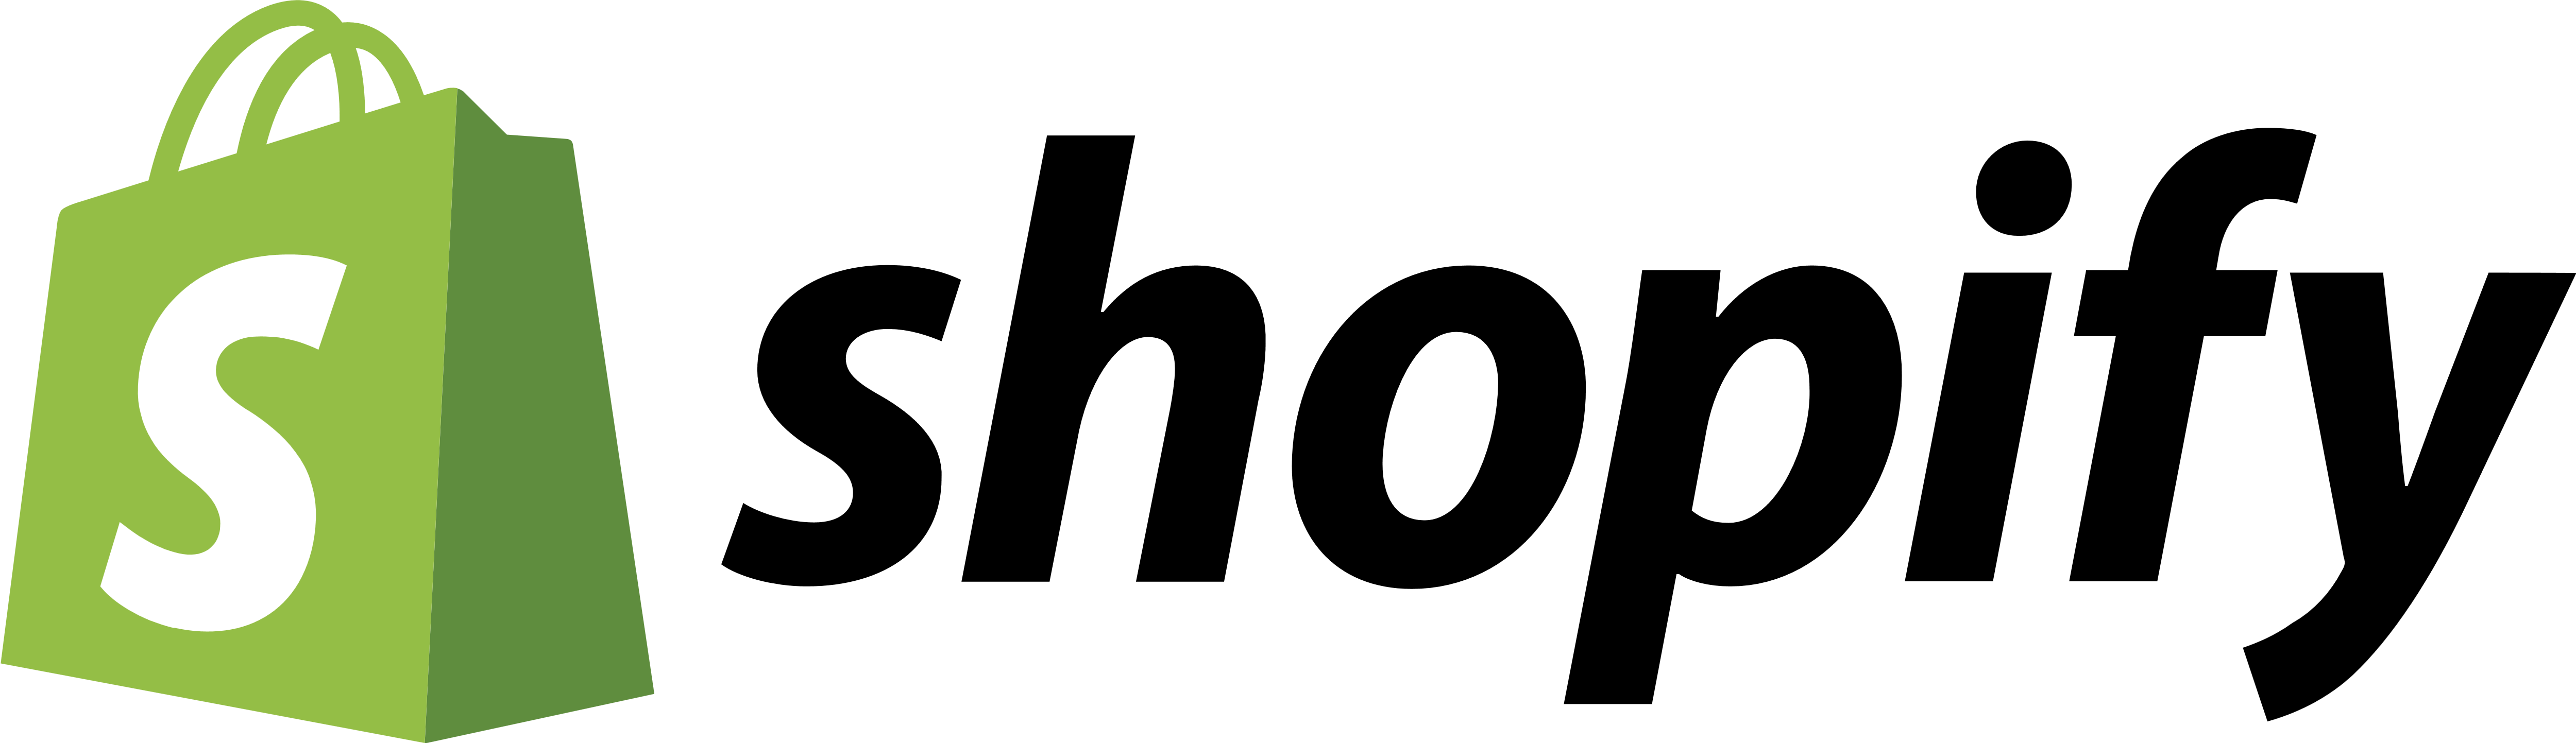 Shopify on Ghost Browser